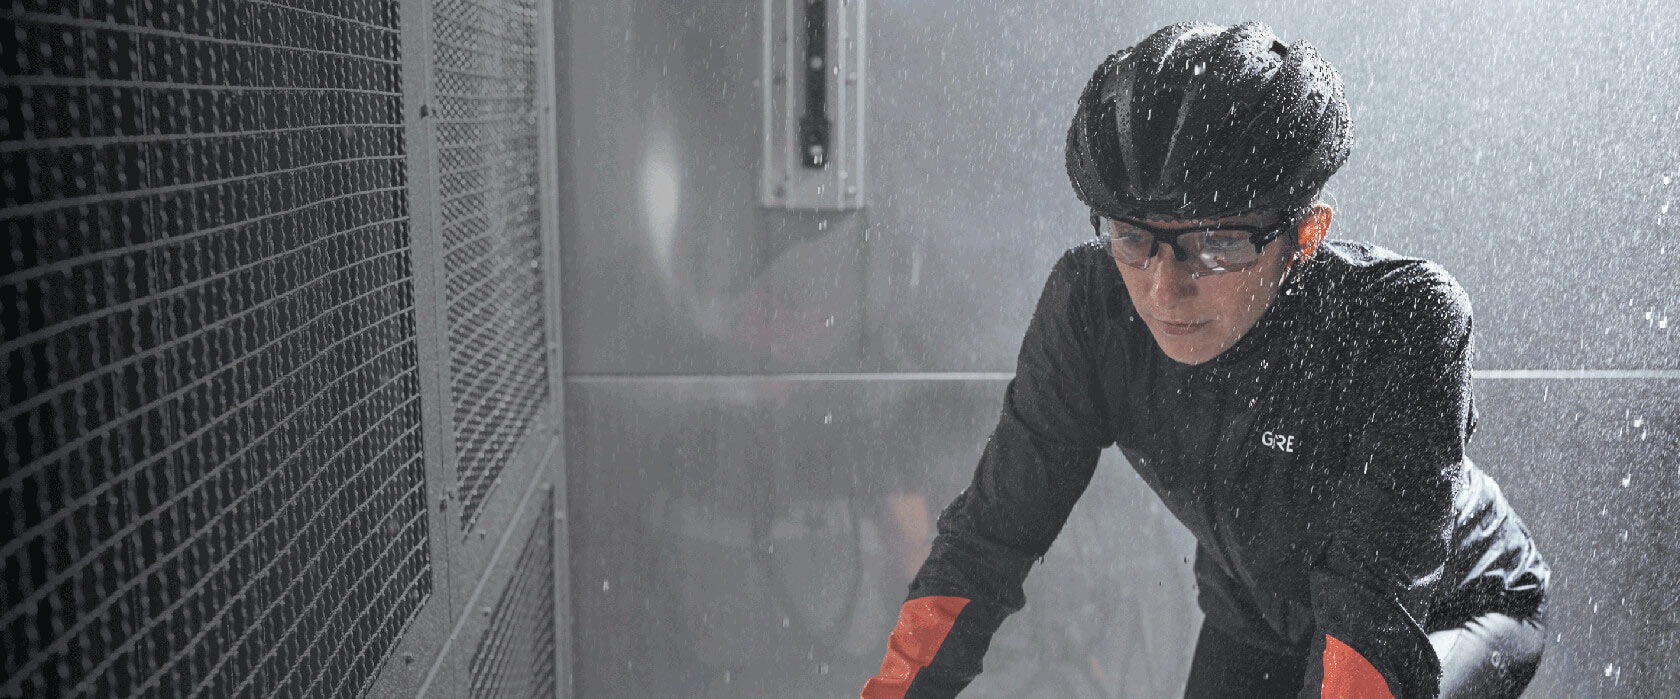 GORE-TEX® BIKE WEAR 10% OFF ALL AUTUMN/WINTER 2019 PRODUCTS